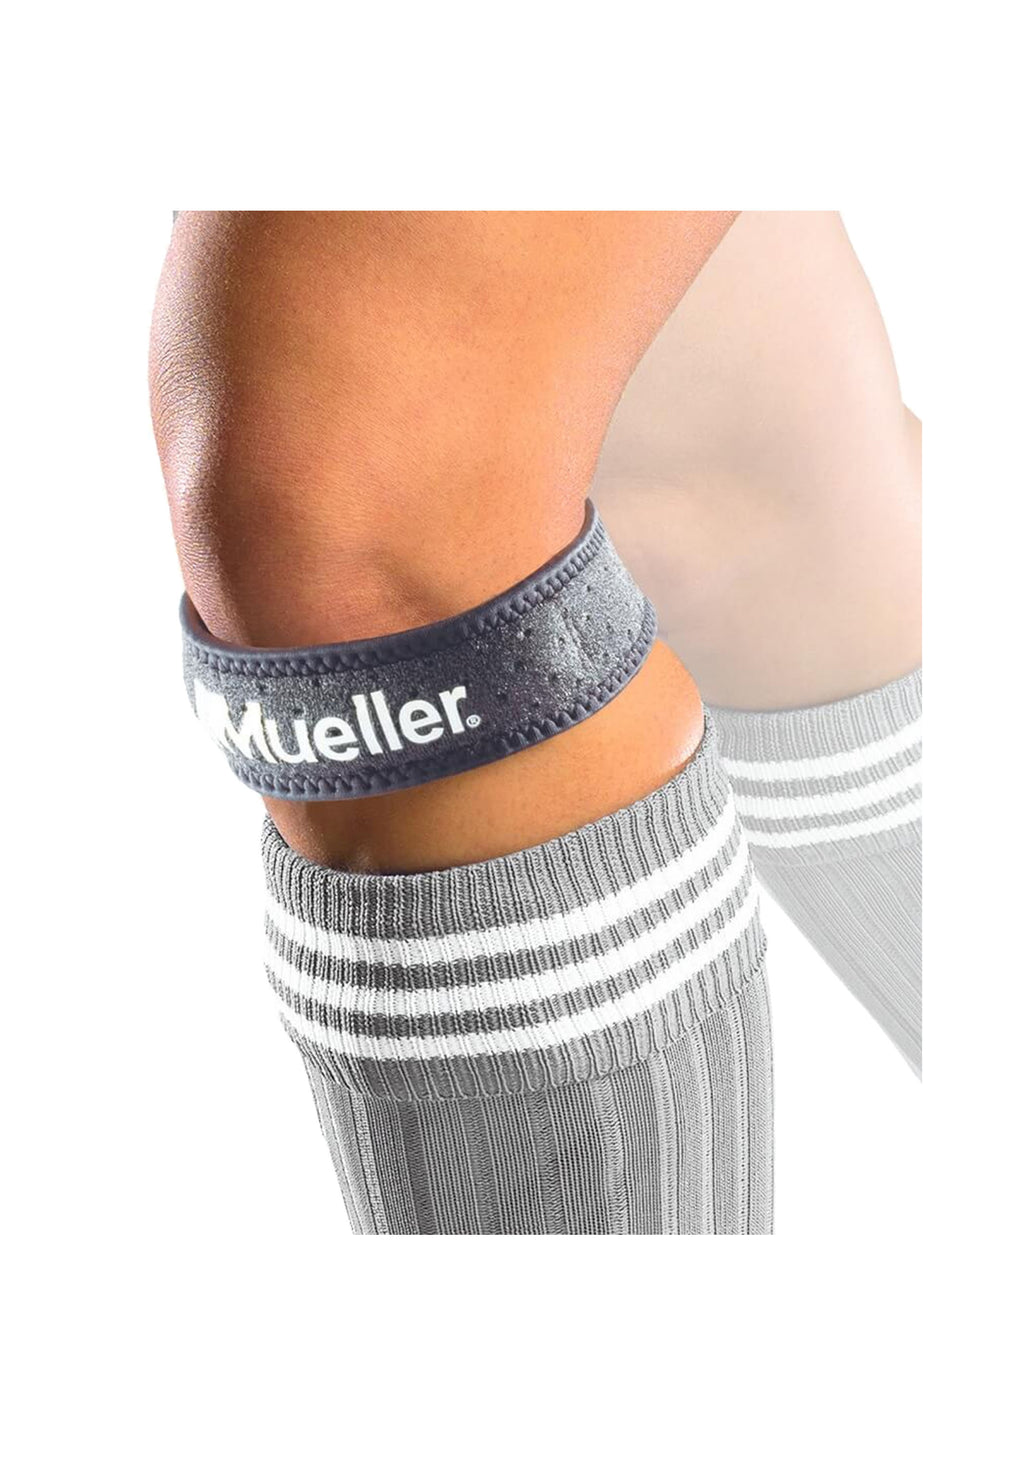 MUELLER ADJUST-TO-FIT KNEE STRAP <BR>